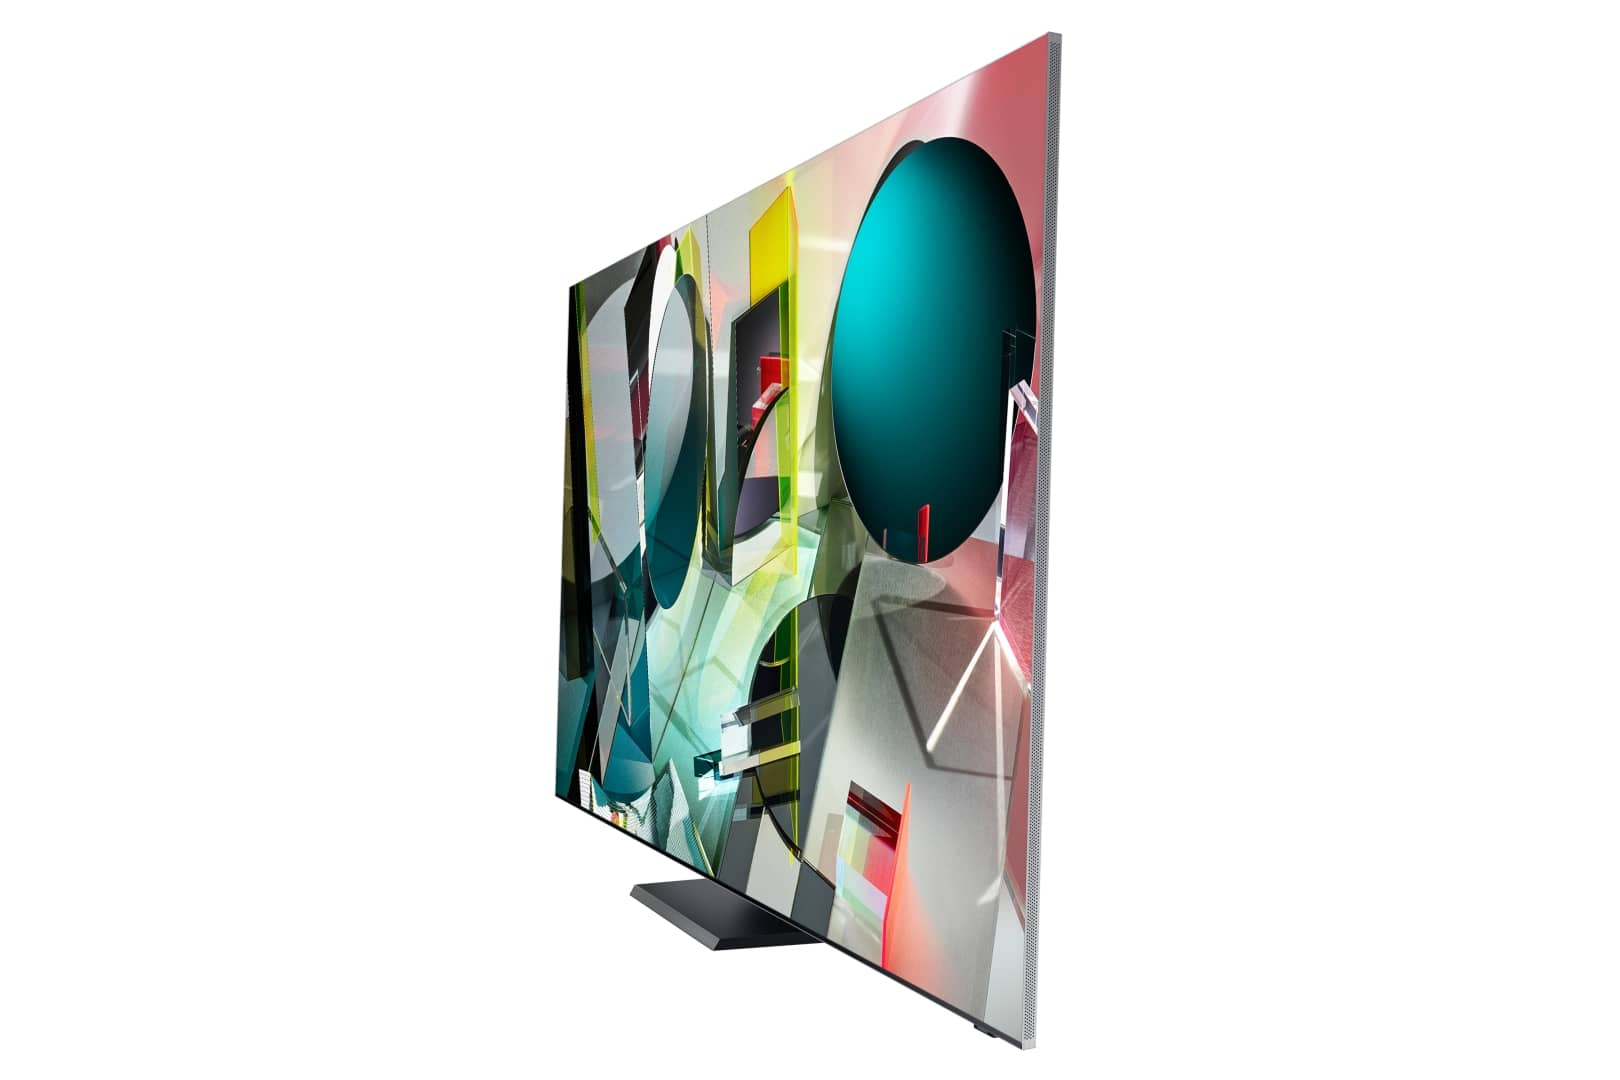 Samsung TV 8K QLED 75Q950TSQTA1 EU 006 Dynamic2 Black